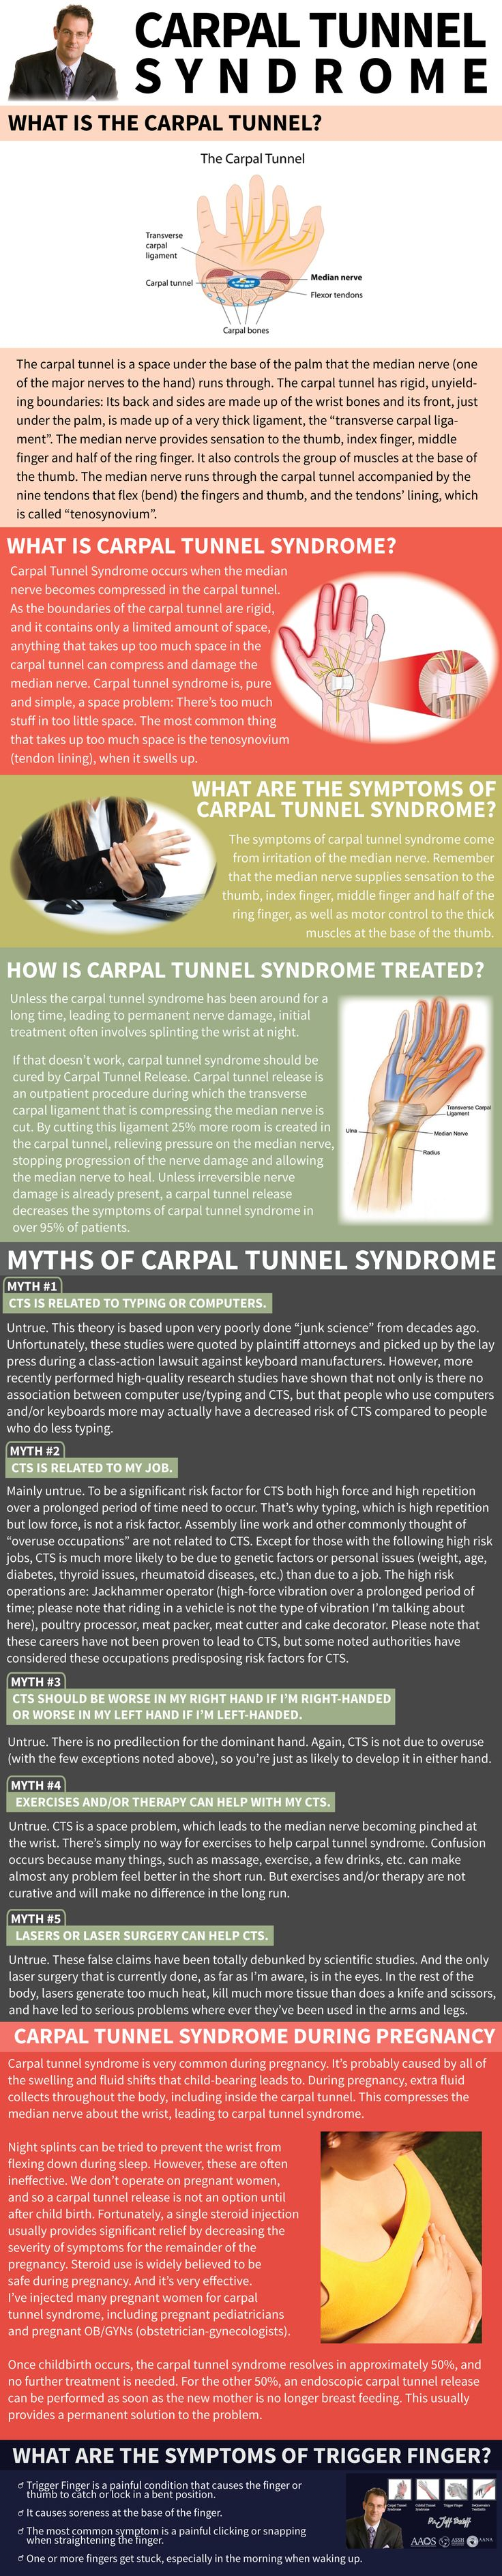 Carpal Tunnel Syndrome occurs when the median nerve becomes compressed in the carpal tunnel. The carpal tunnel has rigid, unyielding boundaries and controls the group of muscles at the base of the thumb.